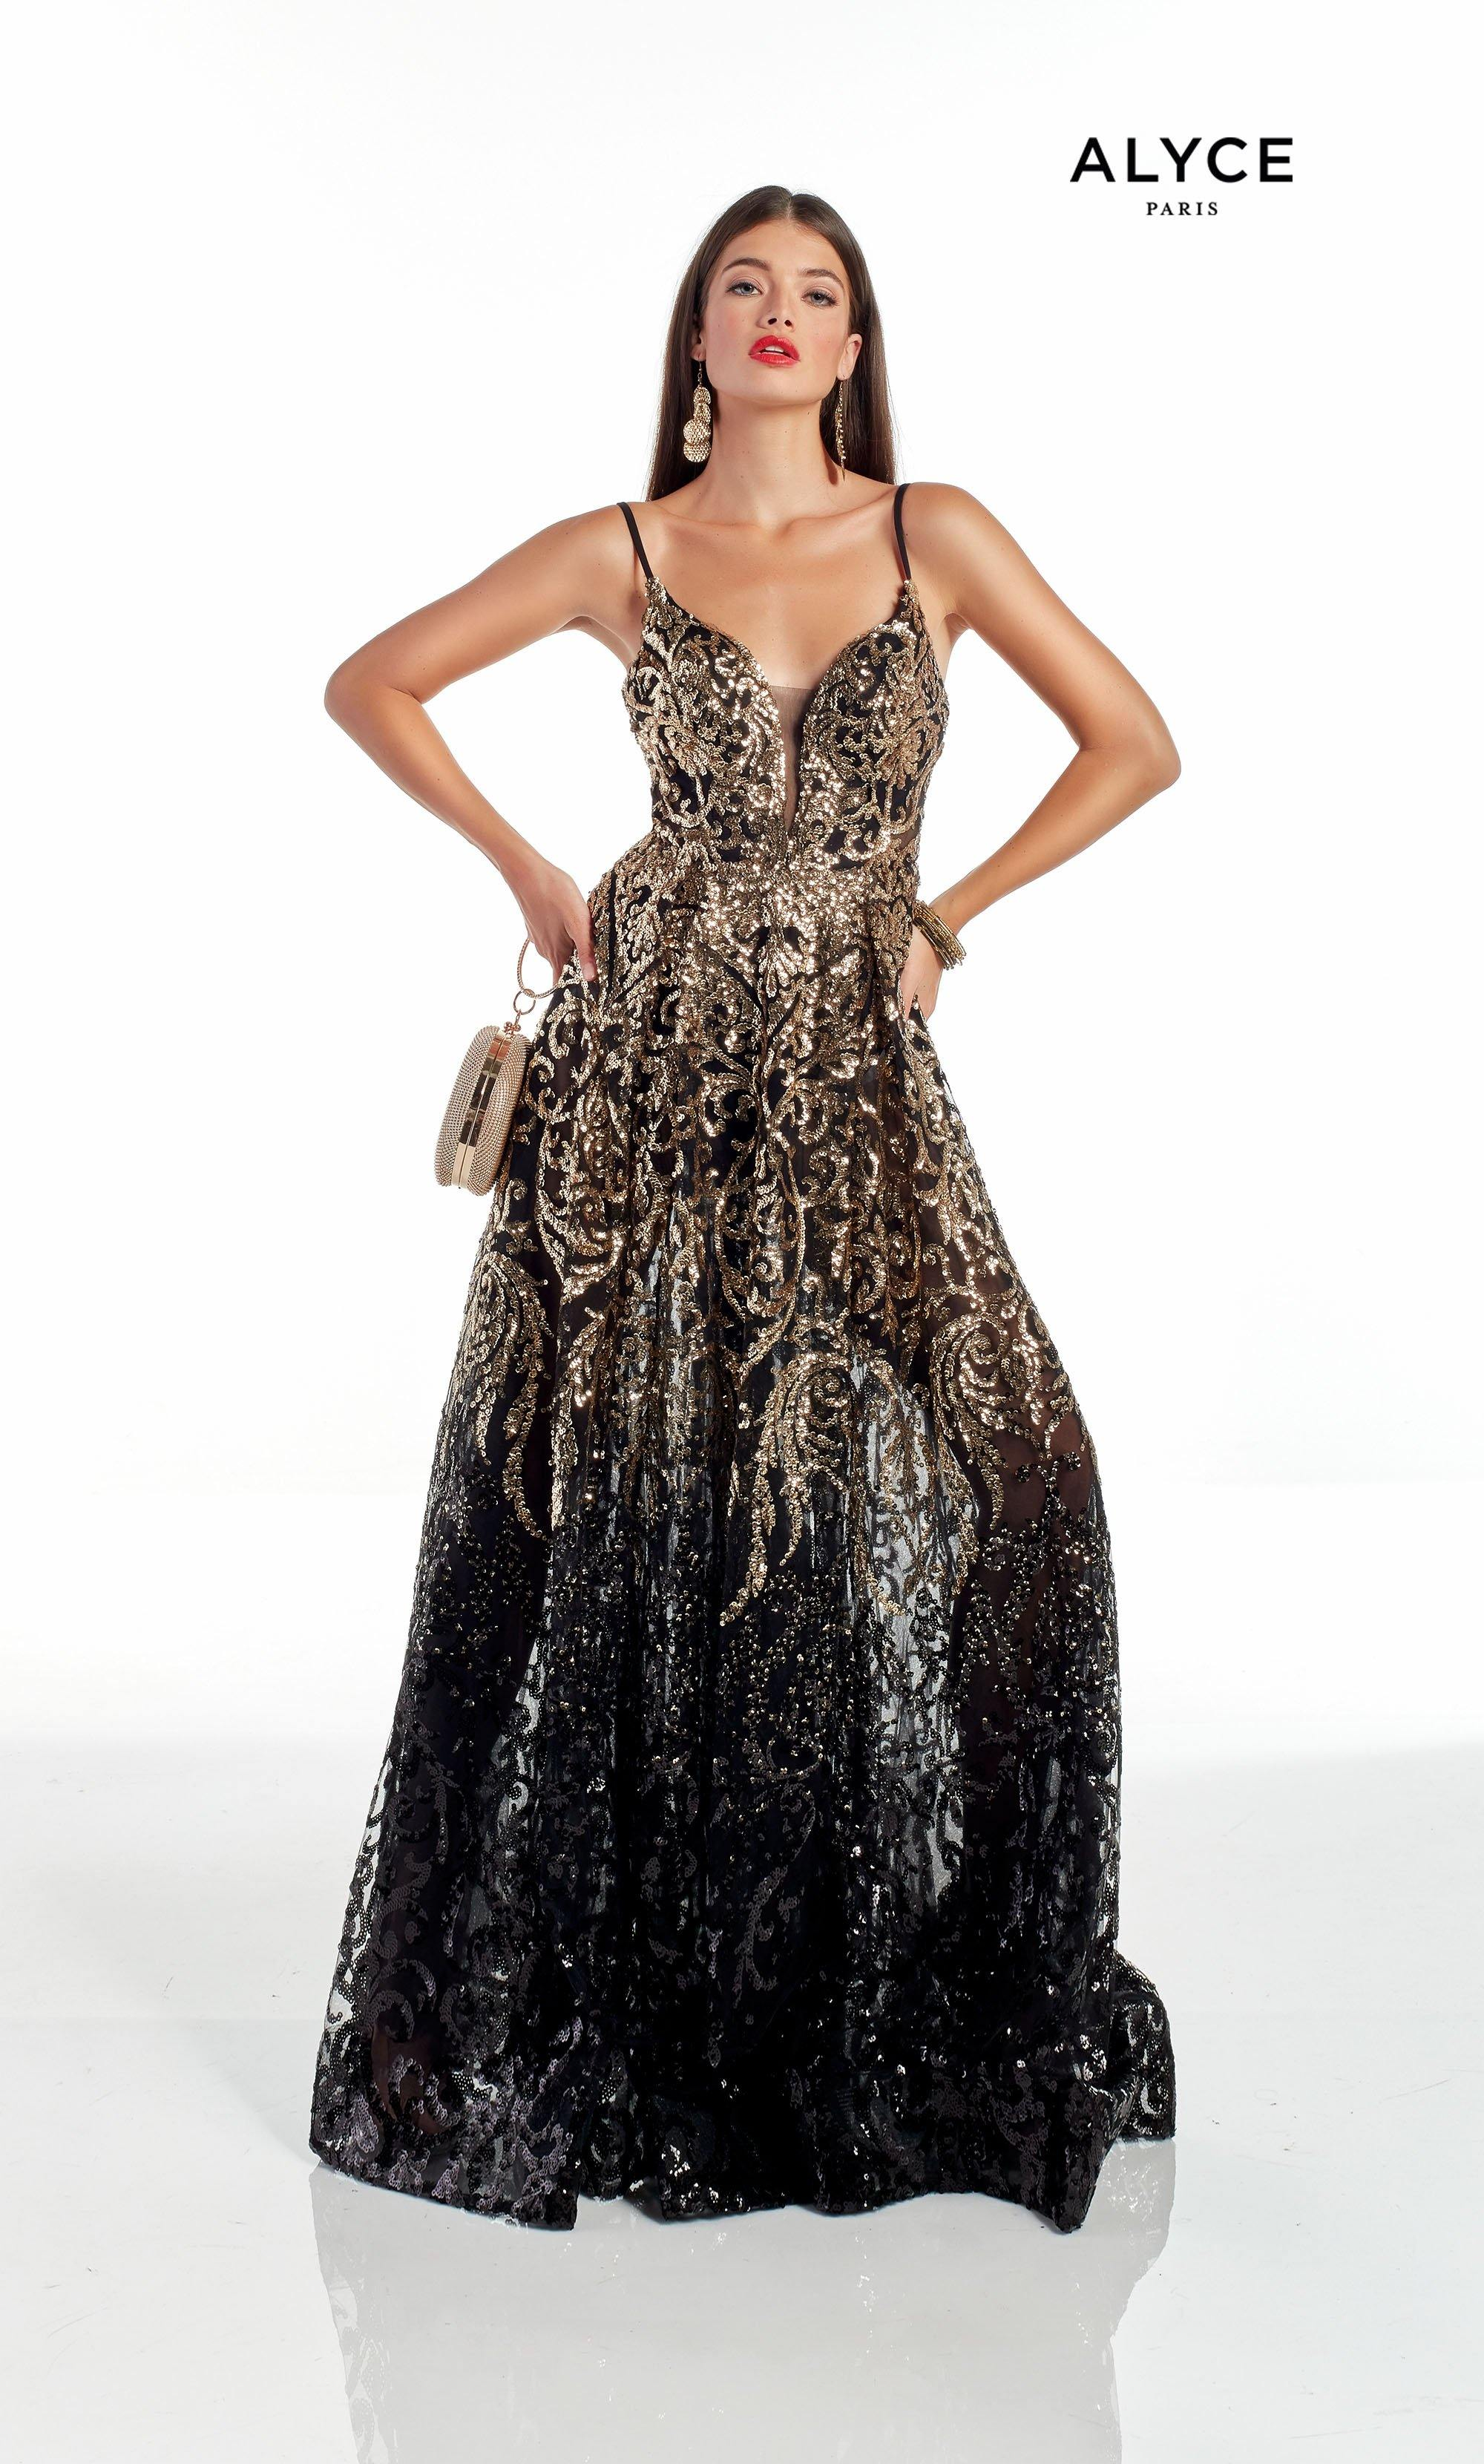 Long Black-Gold glitter tulle ombre prom dress with a plunging neckline, sheer skirt and shorts